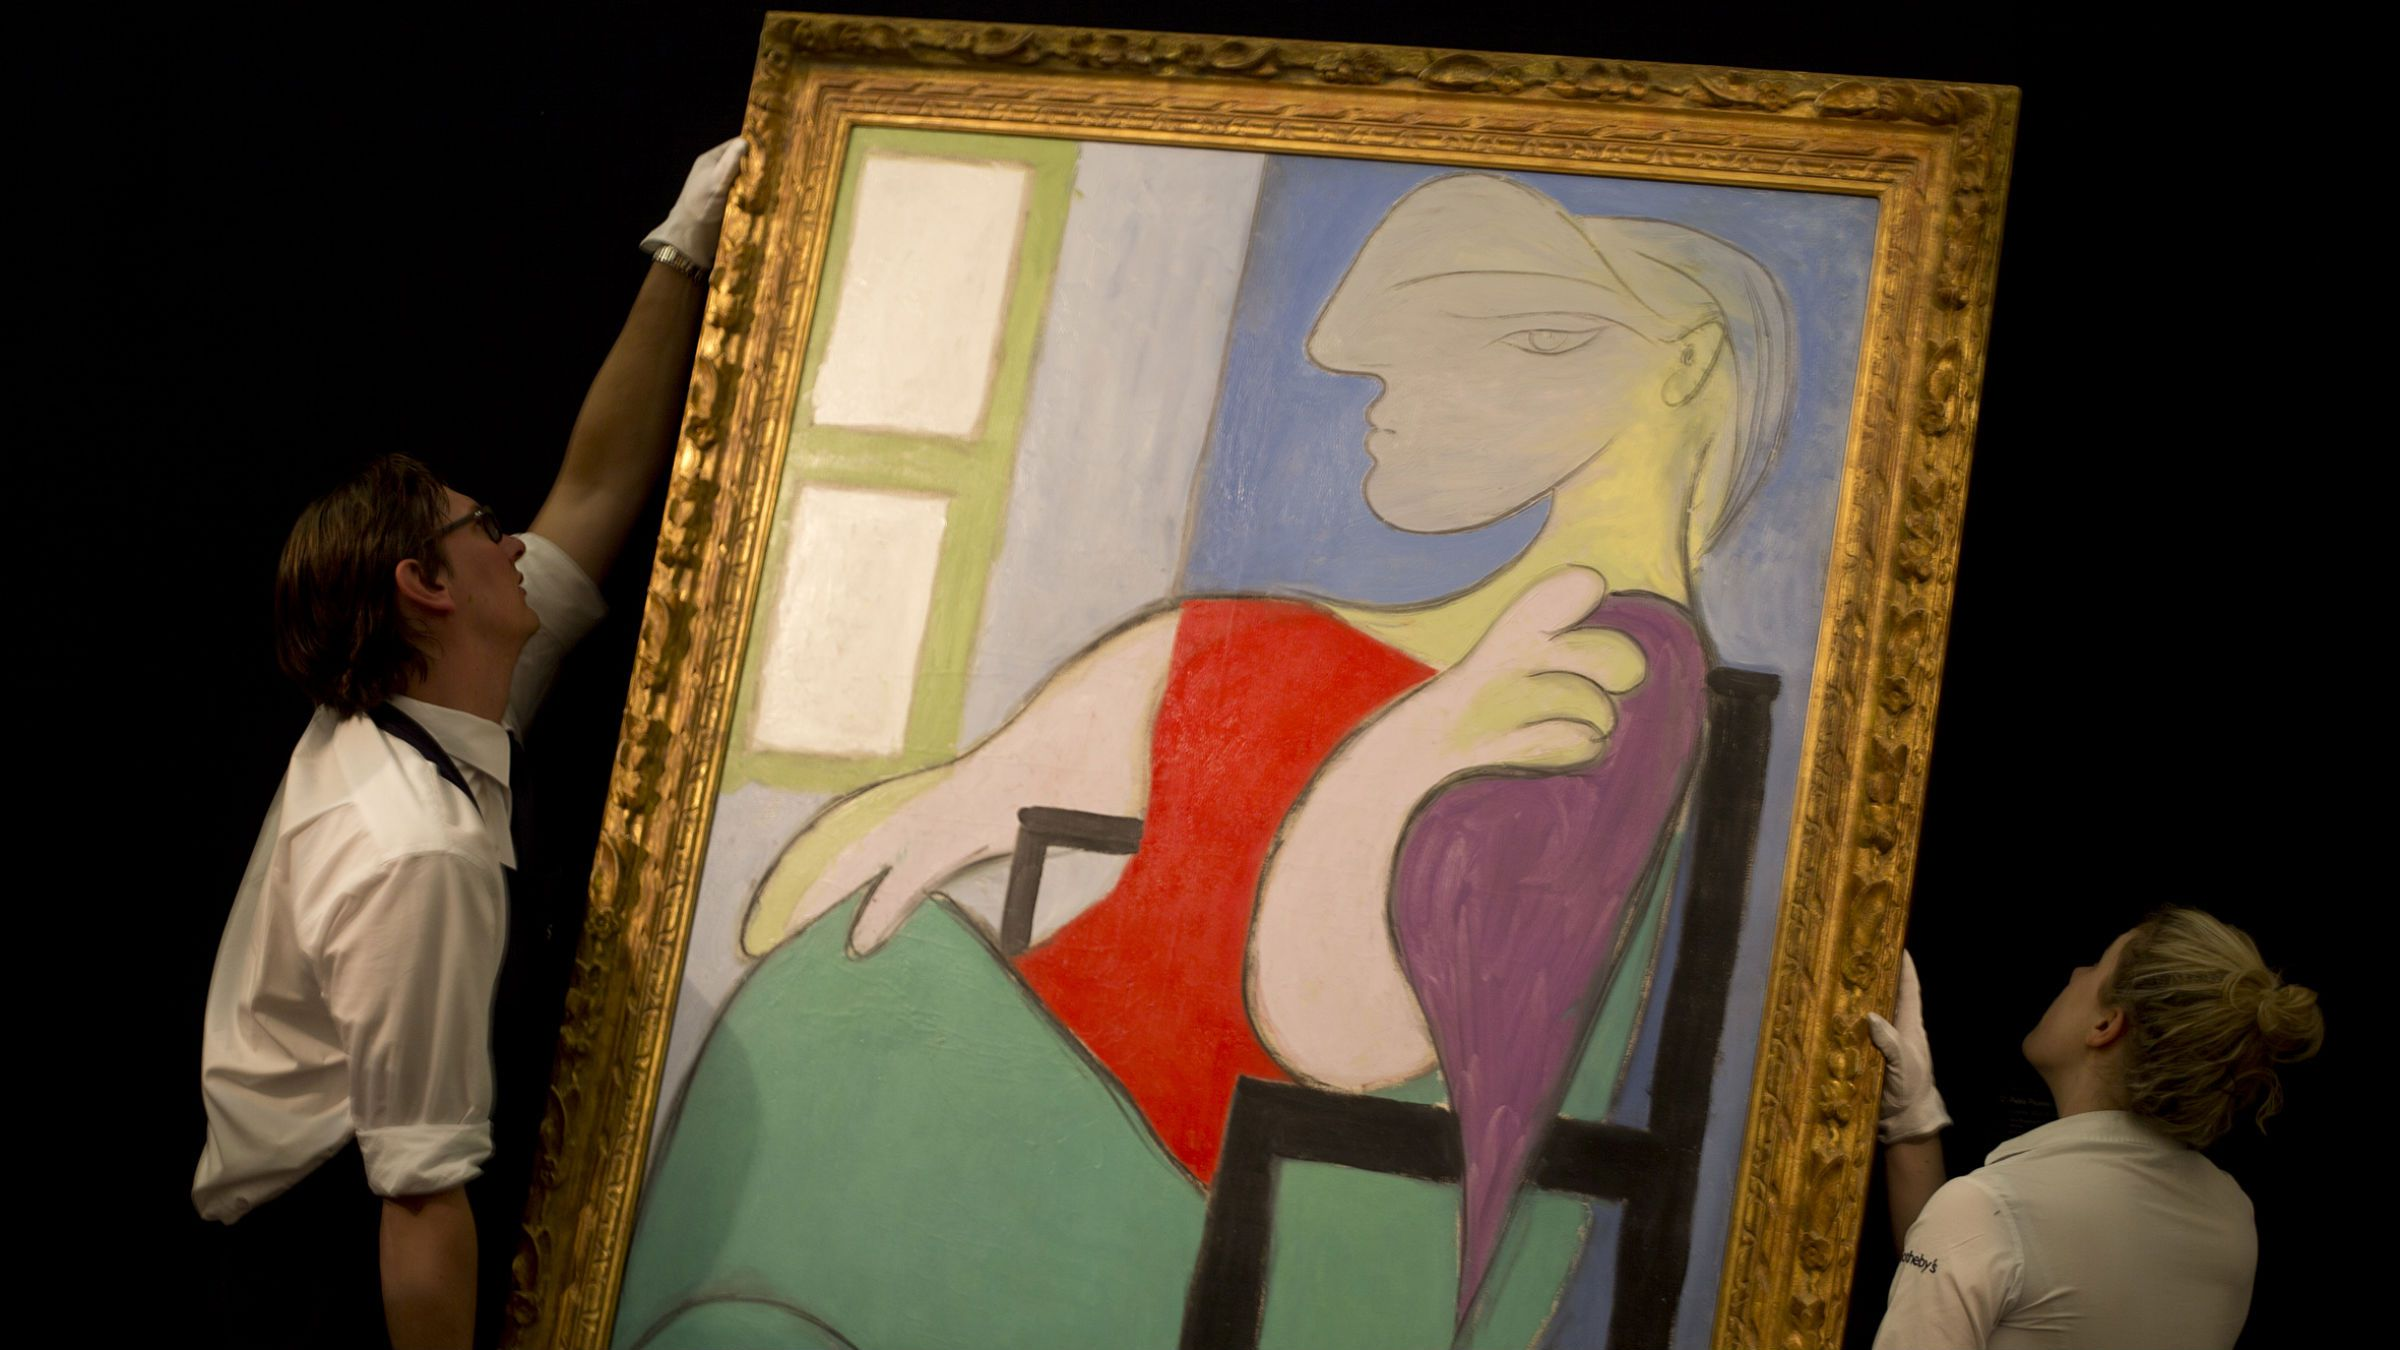 """Two Sotheby's employees adjust a painting by Pablo Picasso entitled """"Femme assise pres d'une fenetre"""" 1932, at Sotheby's auction house during a press preview in London, Thursday, Jan. 31, 2013. The work is estimated to sell for some 25-35 million pounds (US$ 39.5-55 million, euro 29.1-40.8 million) when sold at auction on Feb. 5, in London. (AP Photo/Alastair Grant)"""